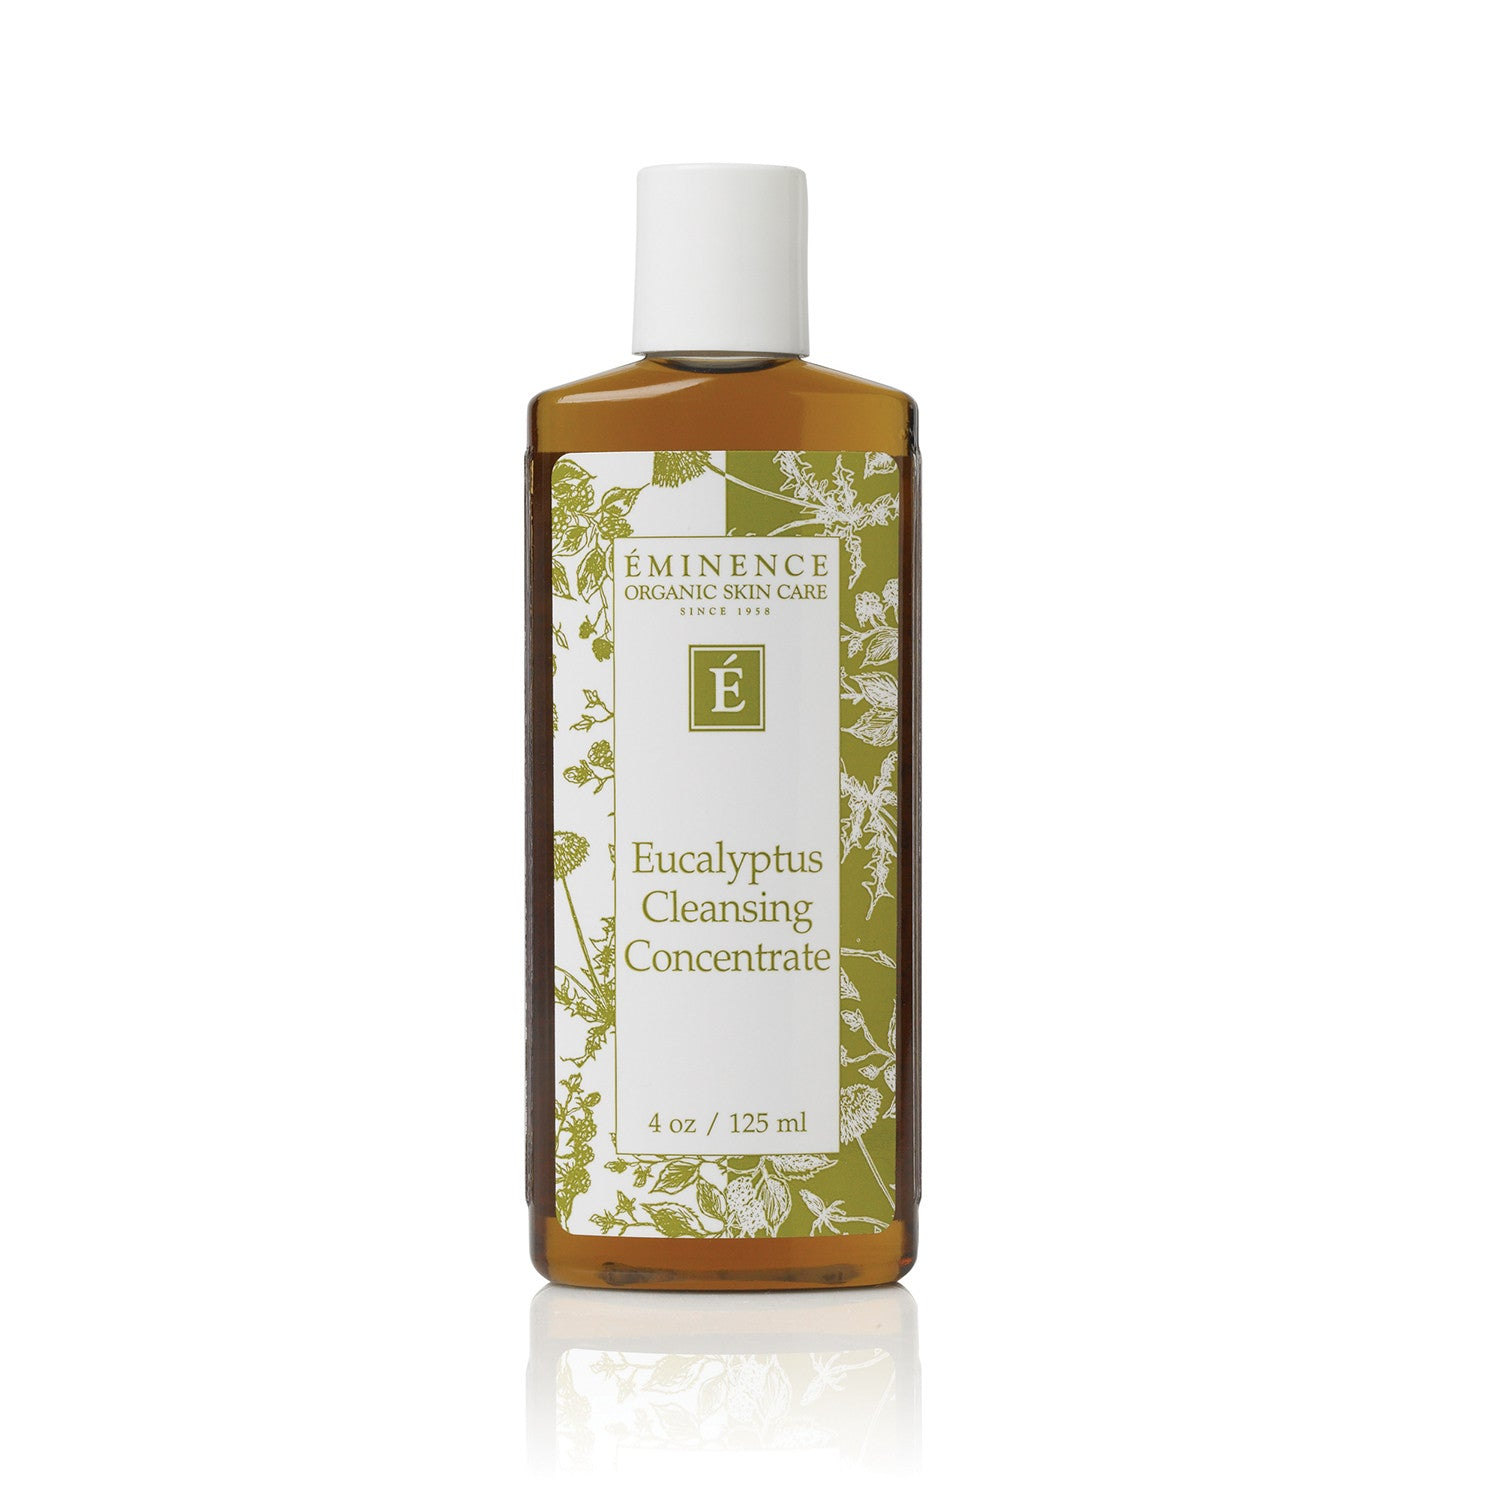 Eucalyptus Cleaning Concentrate